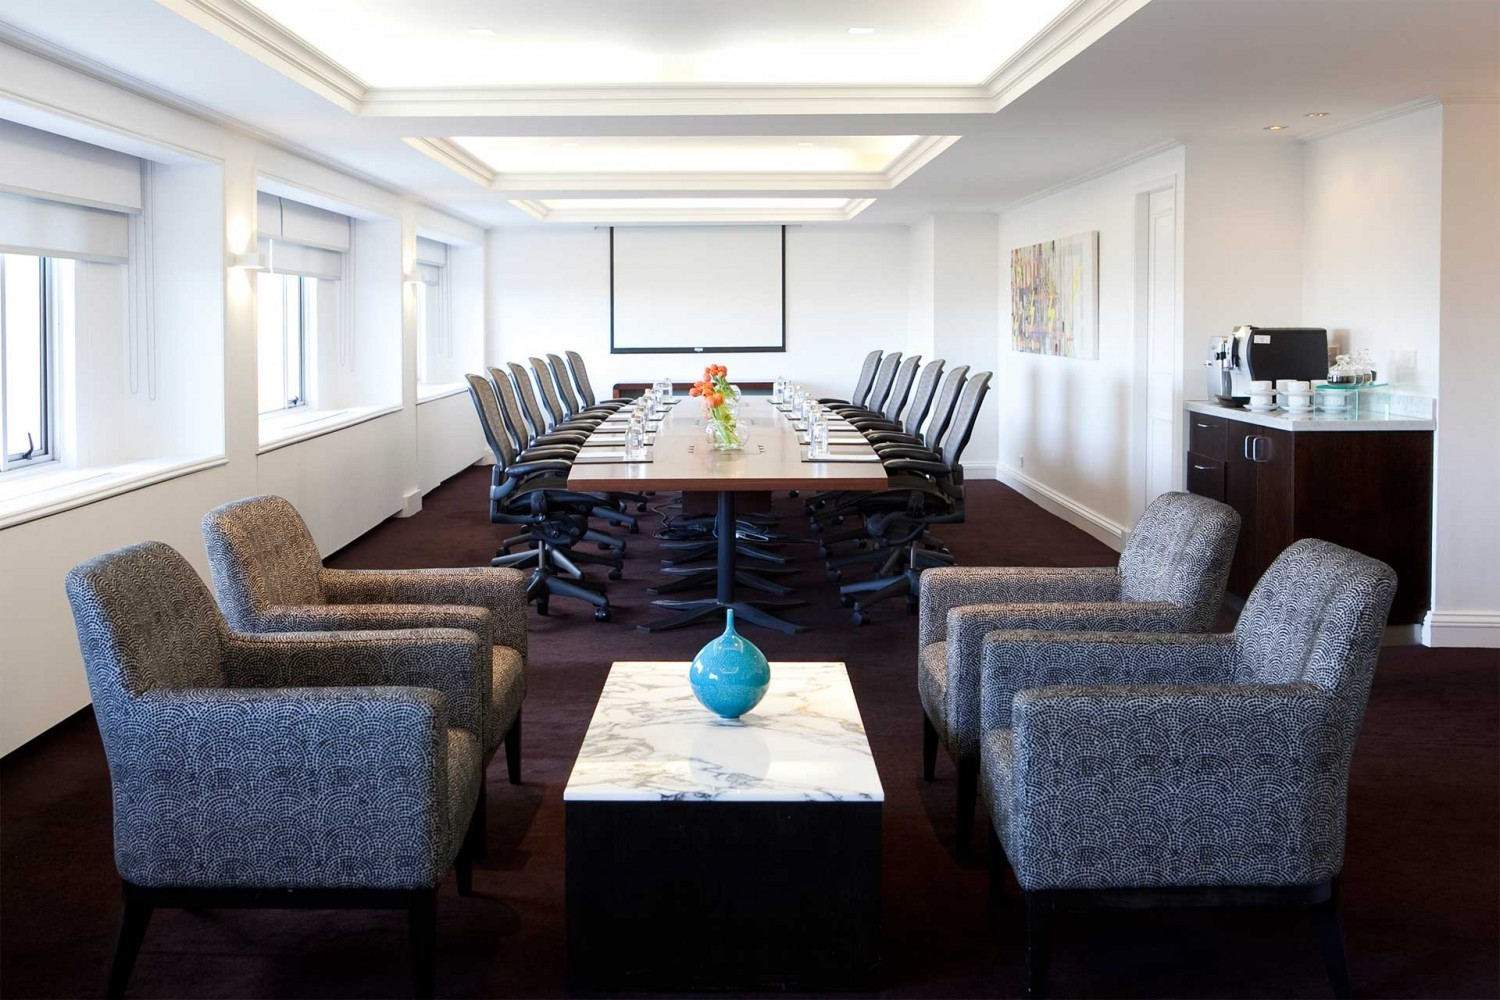 Pullman, hotel, auckland, boardroom, conference, meeting, space, function, event, planning, corporate, rooms